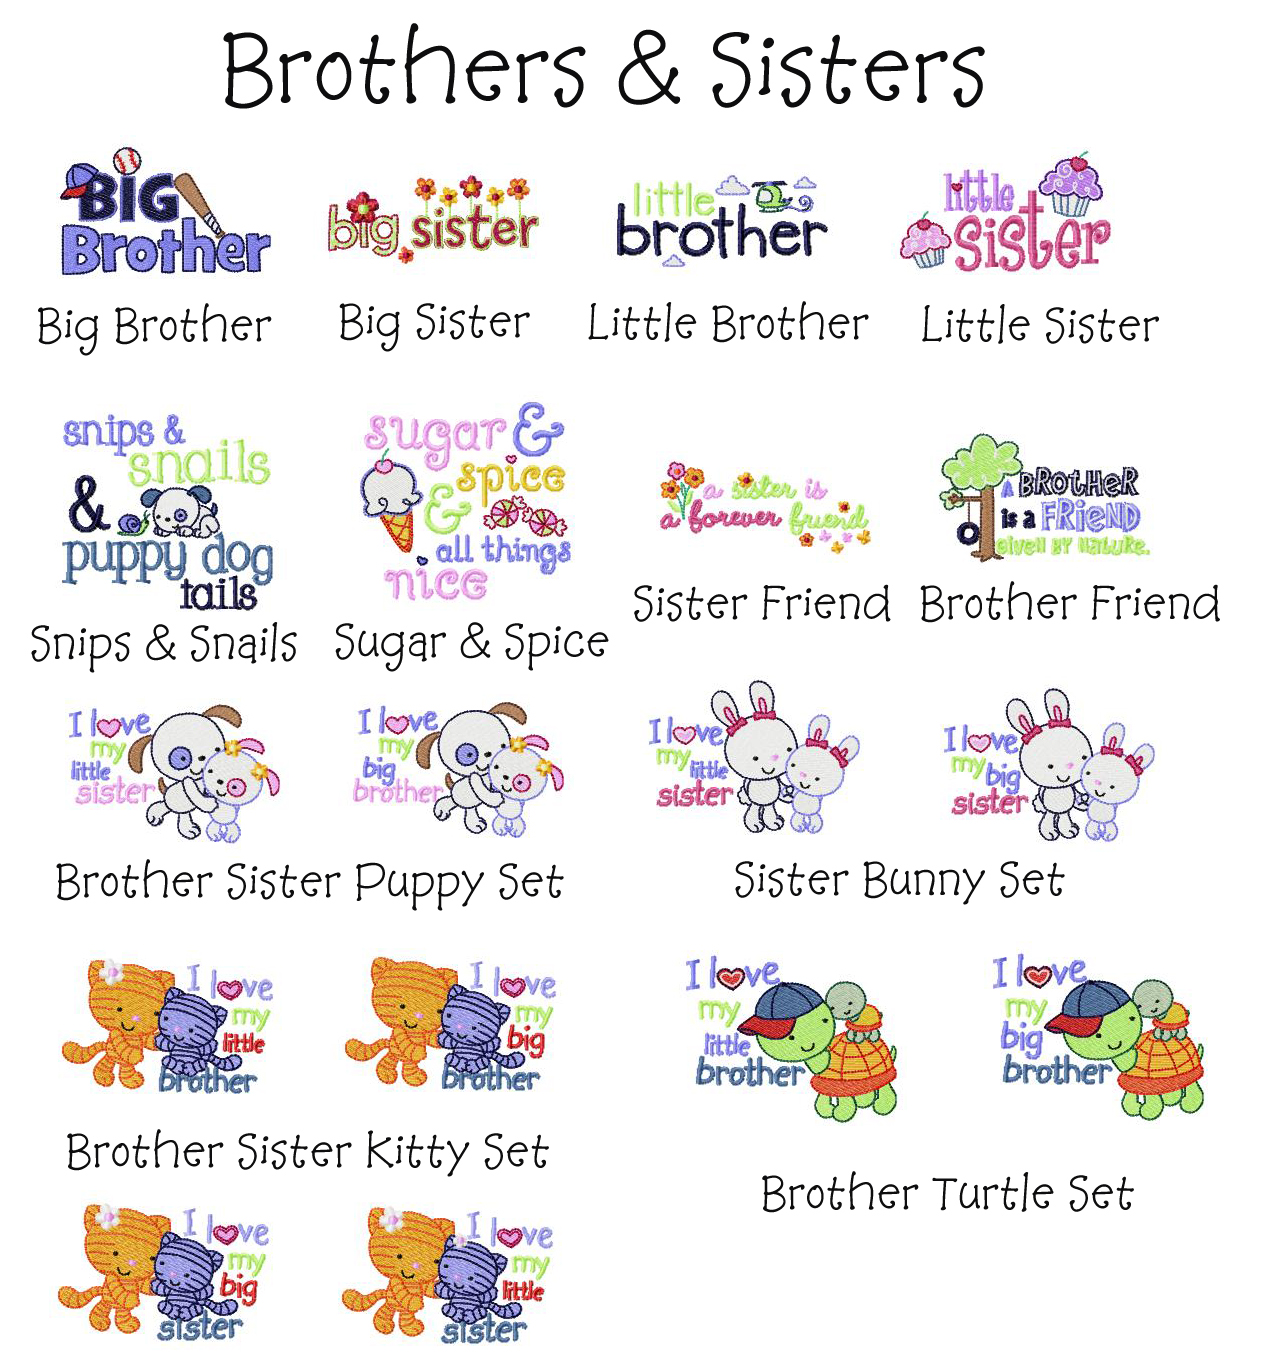 Big Sister To Brother Quotes: Brother And Sister Quotes. QuotesGram